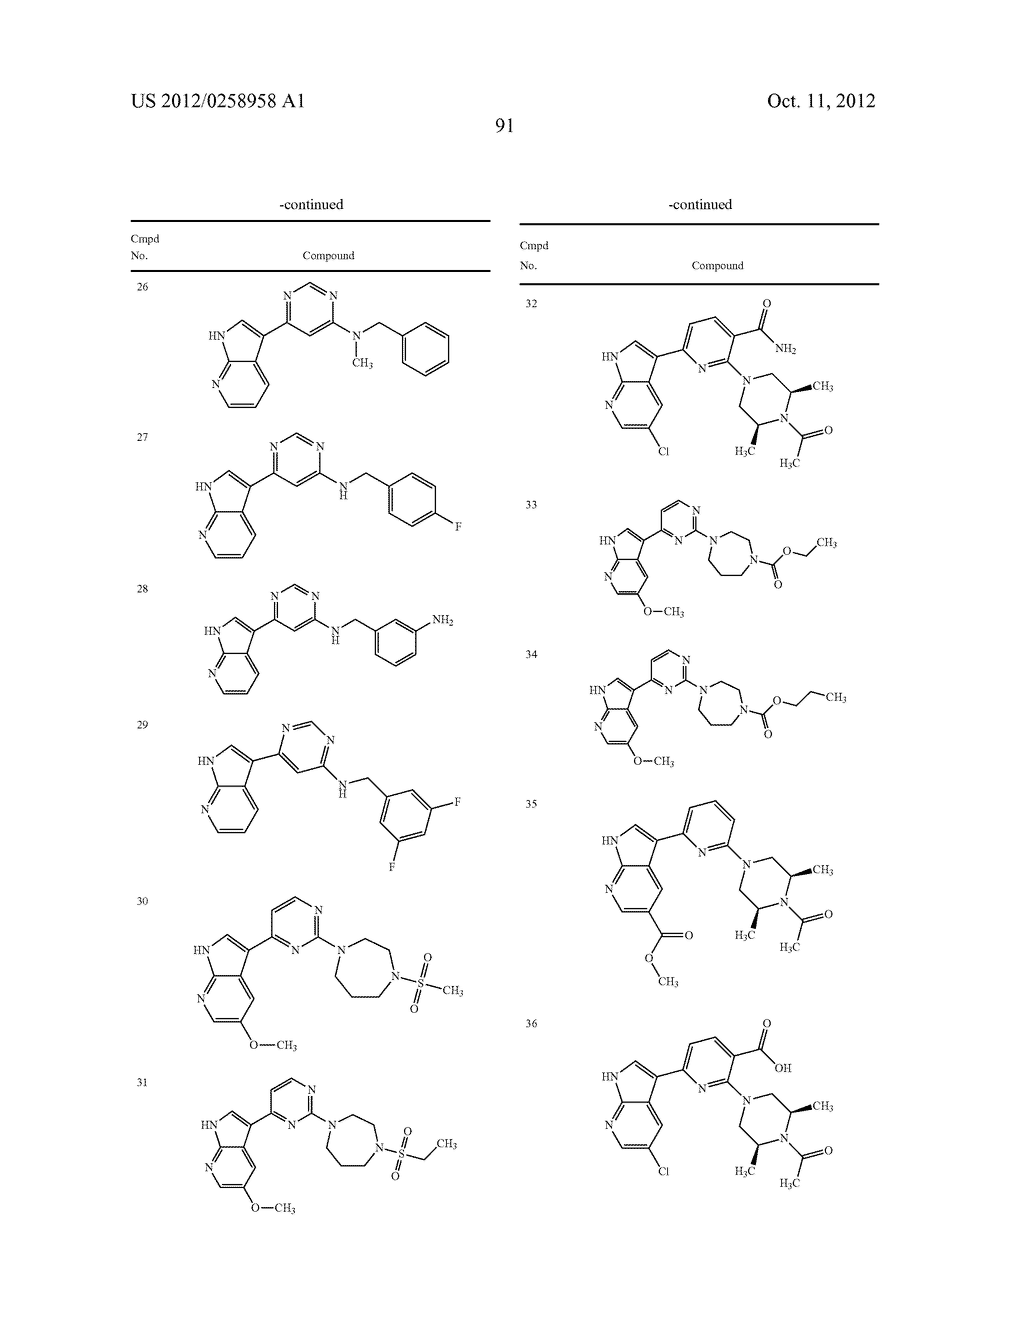 AZAINDOLES USEFUL AS INHIBITORS OF JAK AND OTHER PROTEIN KINASES - diagram, schematic, and image 92